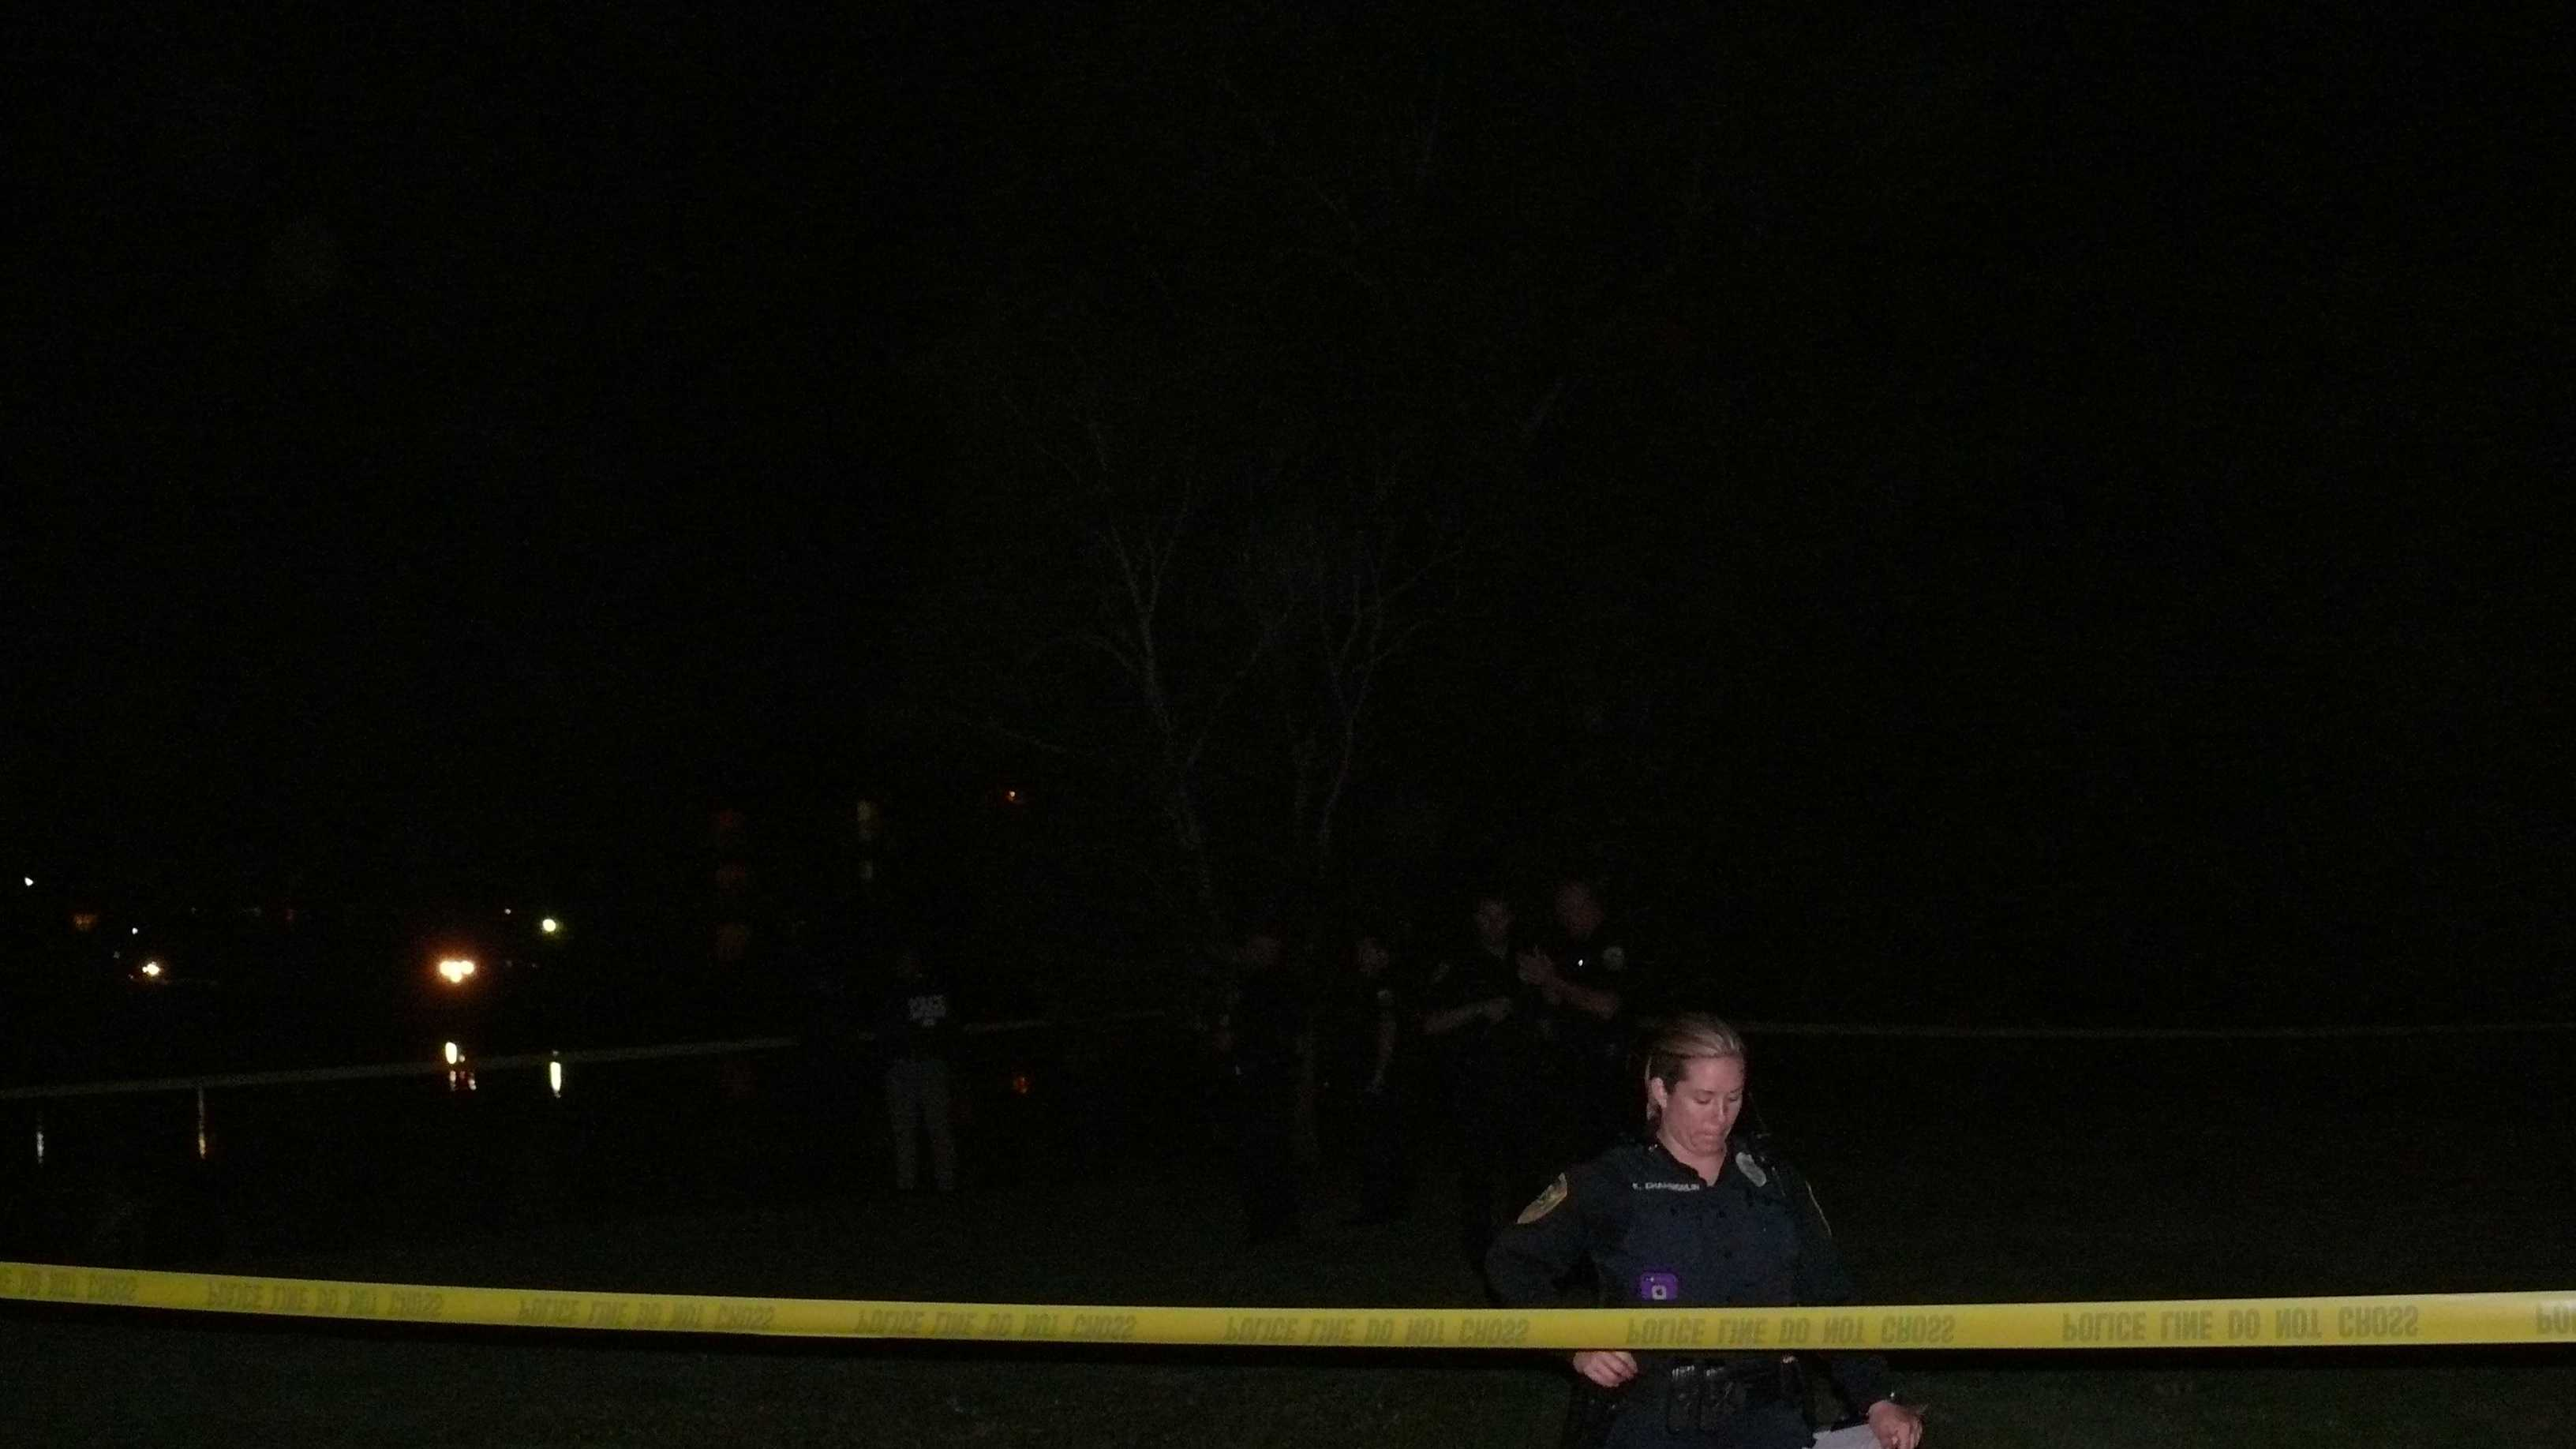 Body found floating in lake at Sanctuary Apartment complex